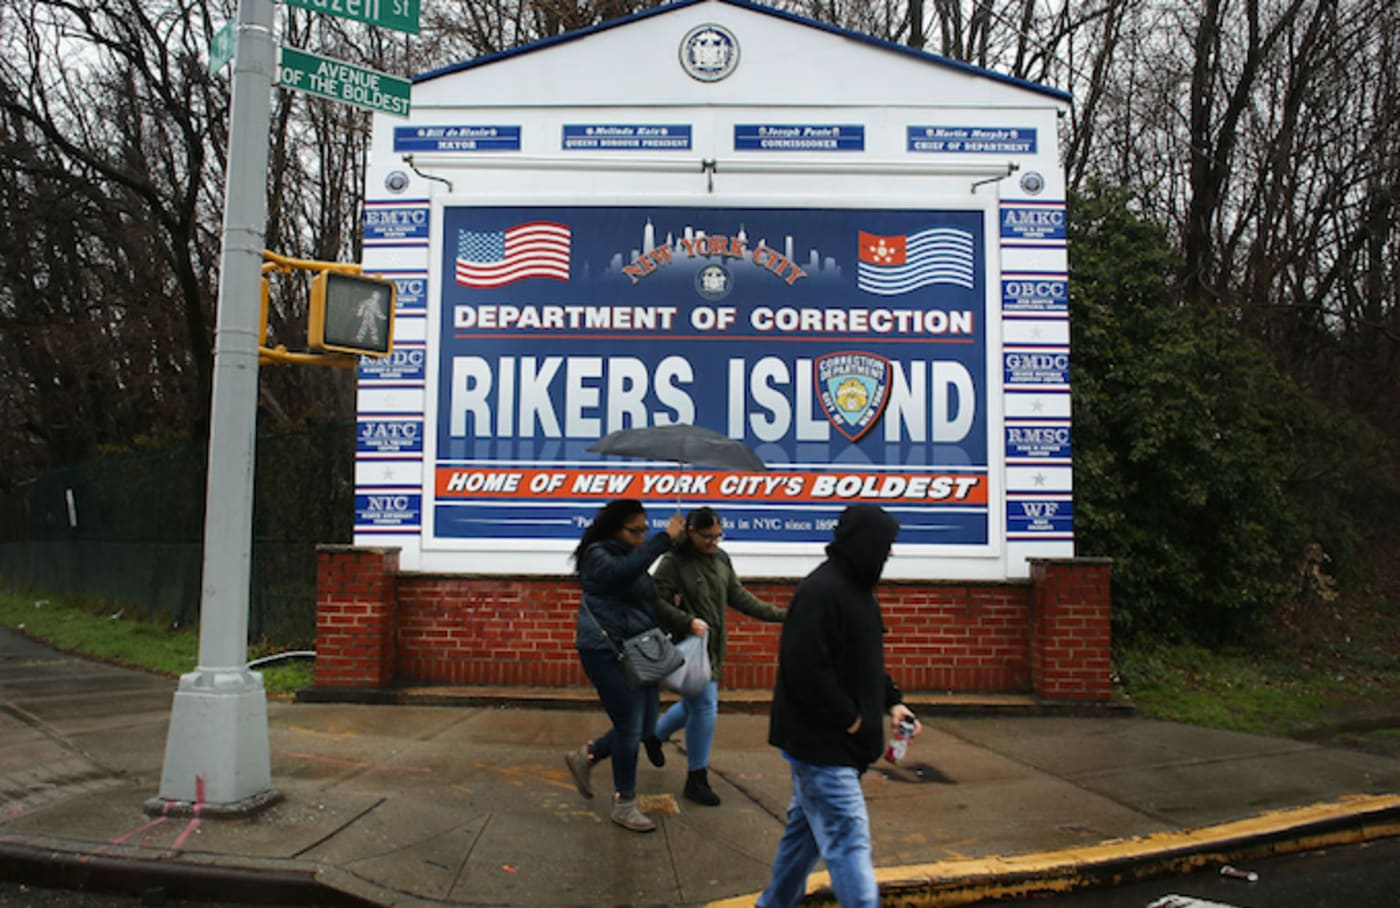 People walk by a sign at the entrance to Rikers Island